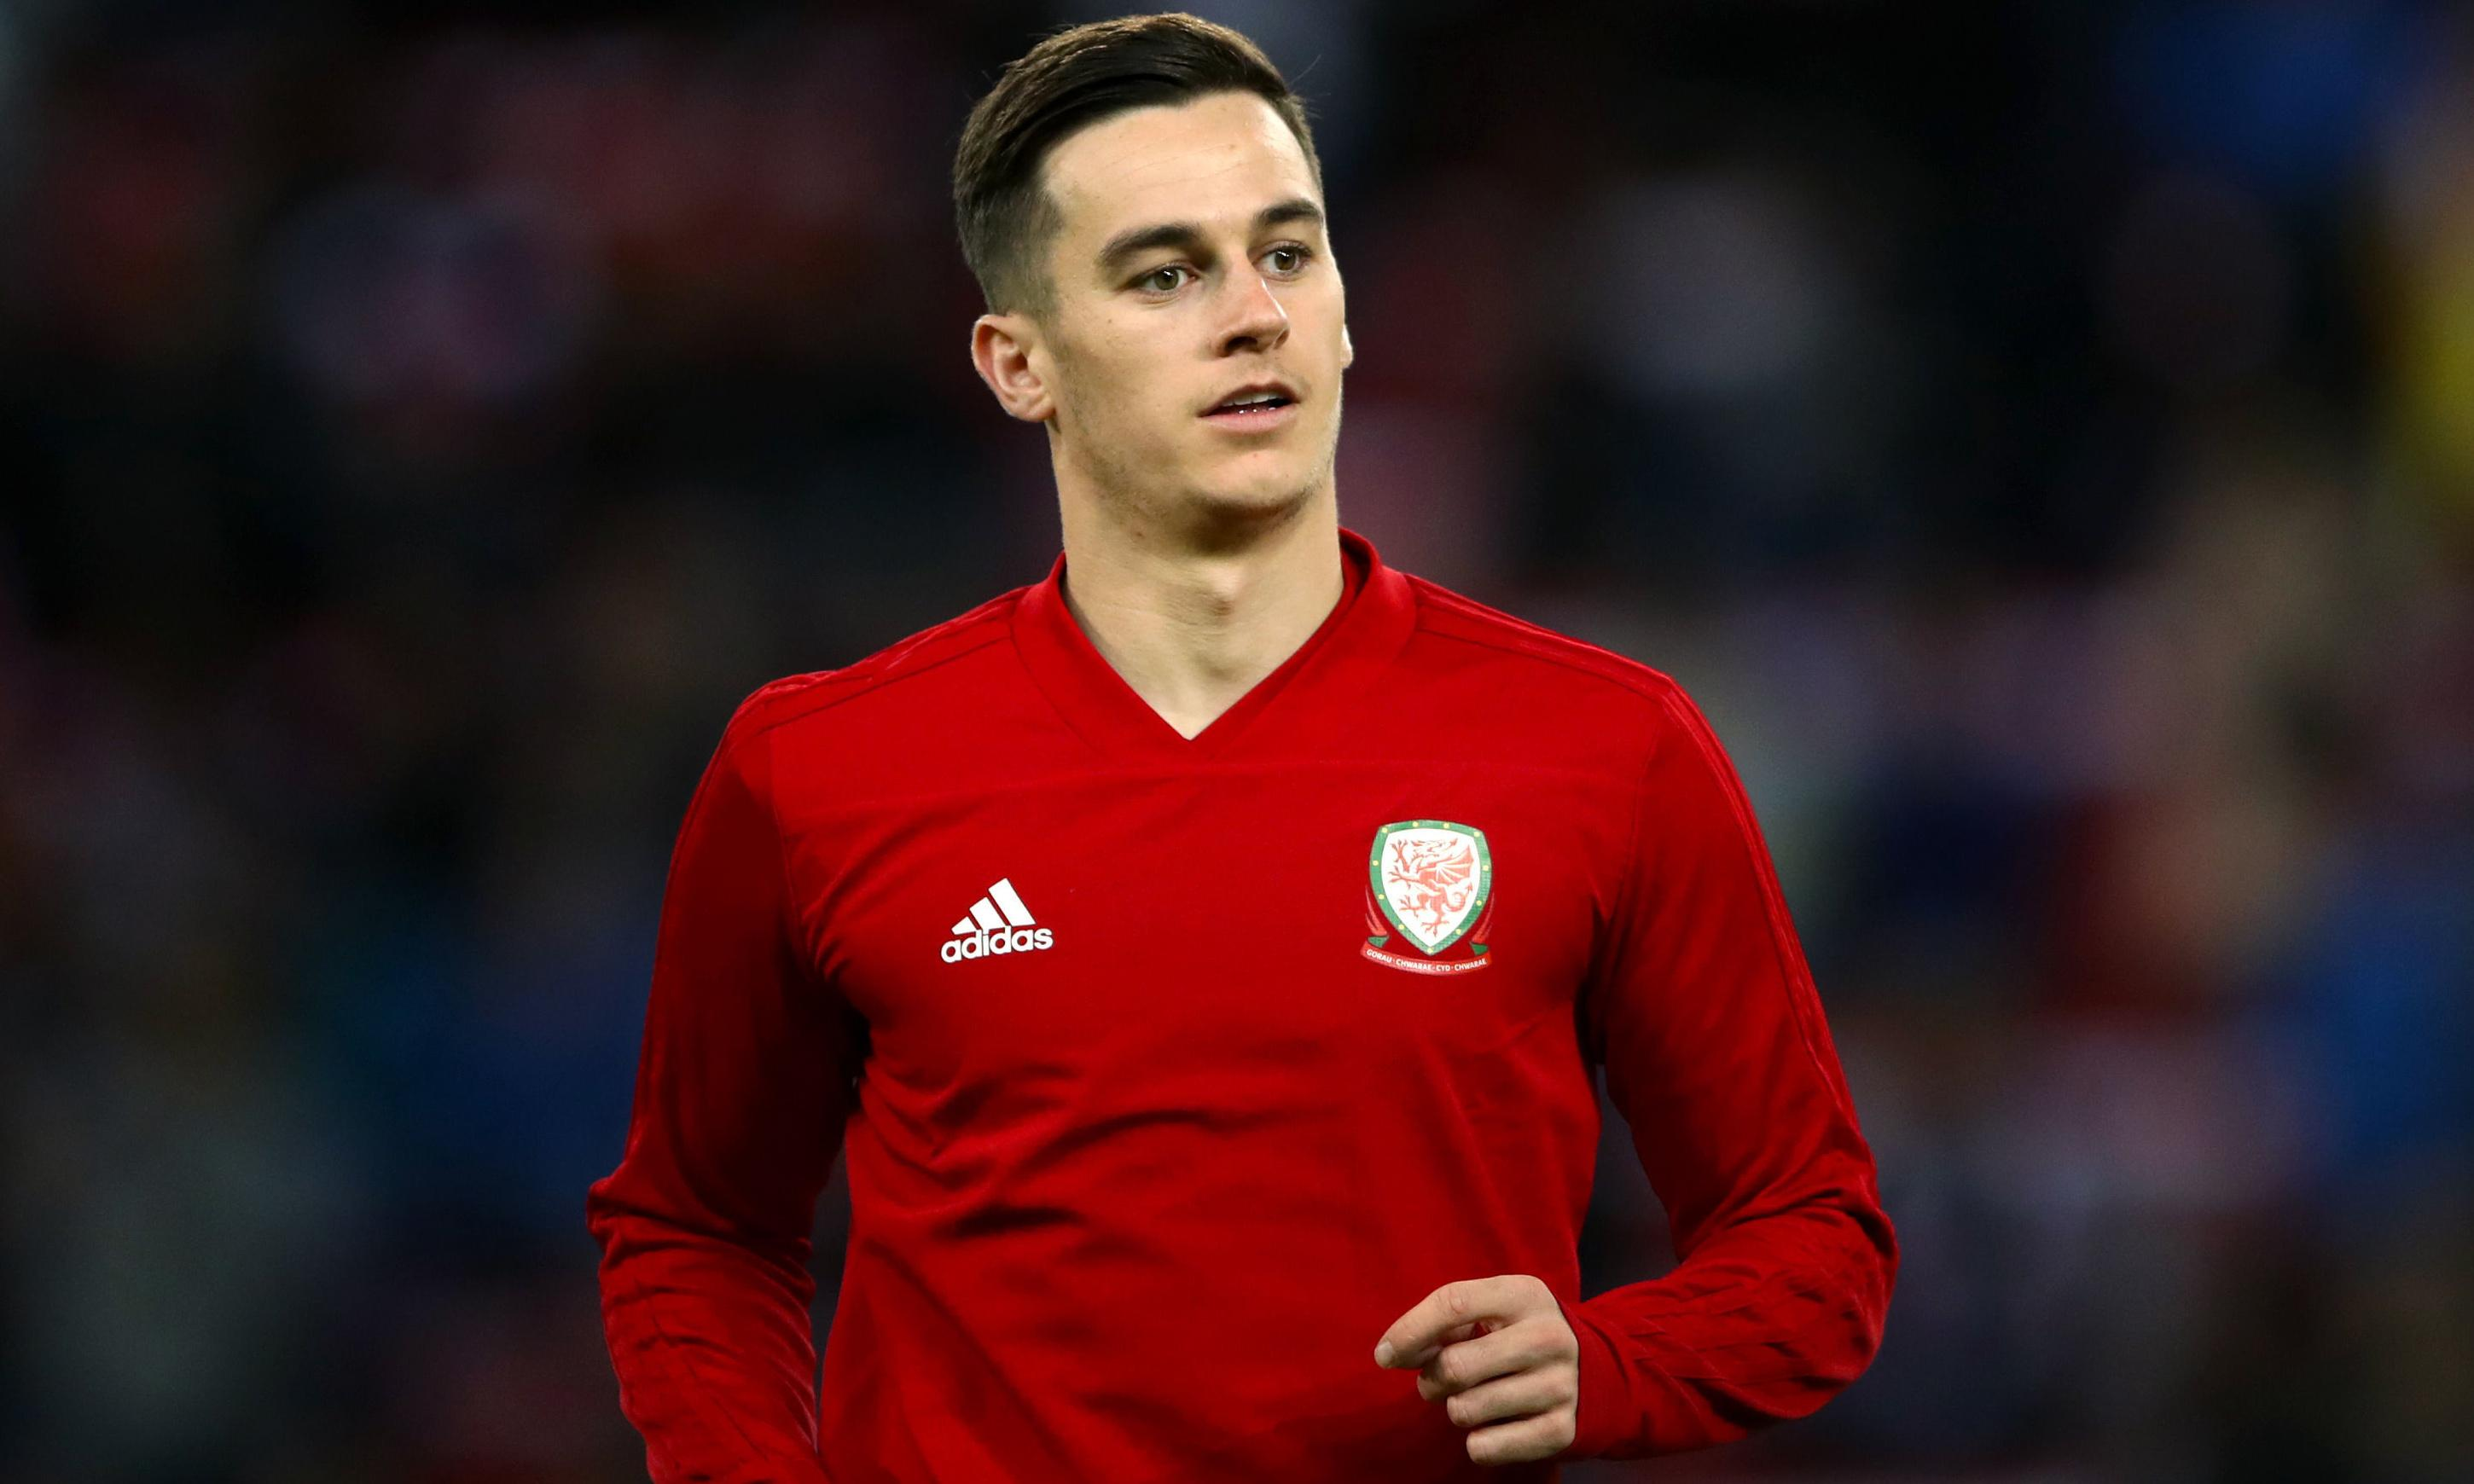 Wales lenience for Tom Lawrence shows Giggs too quick to forgive